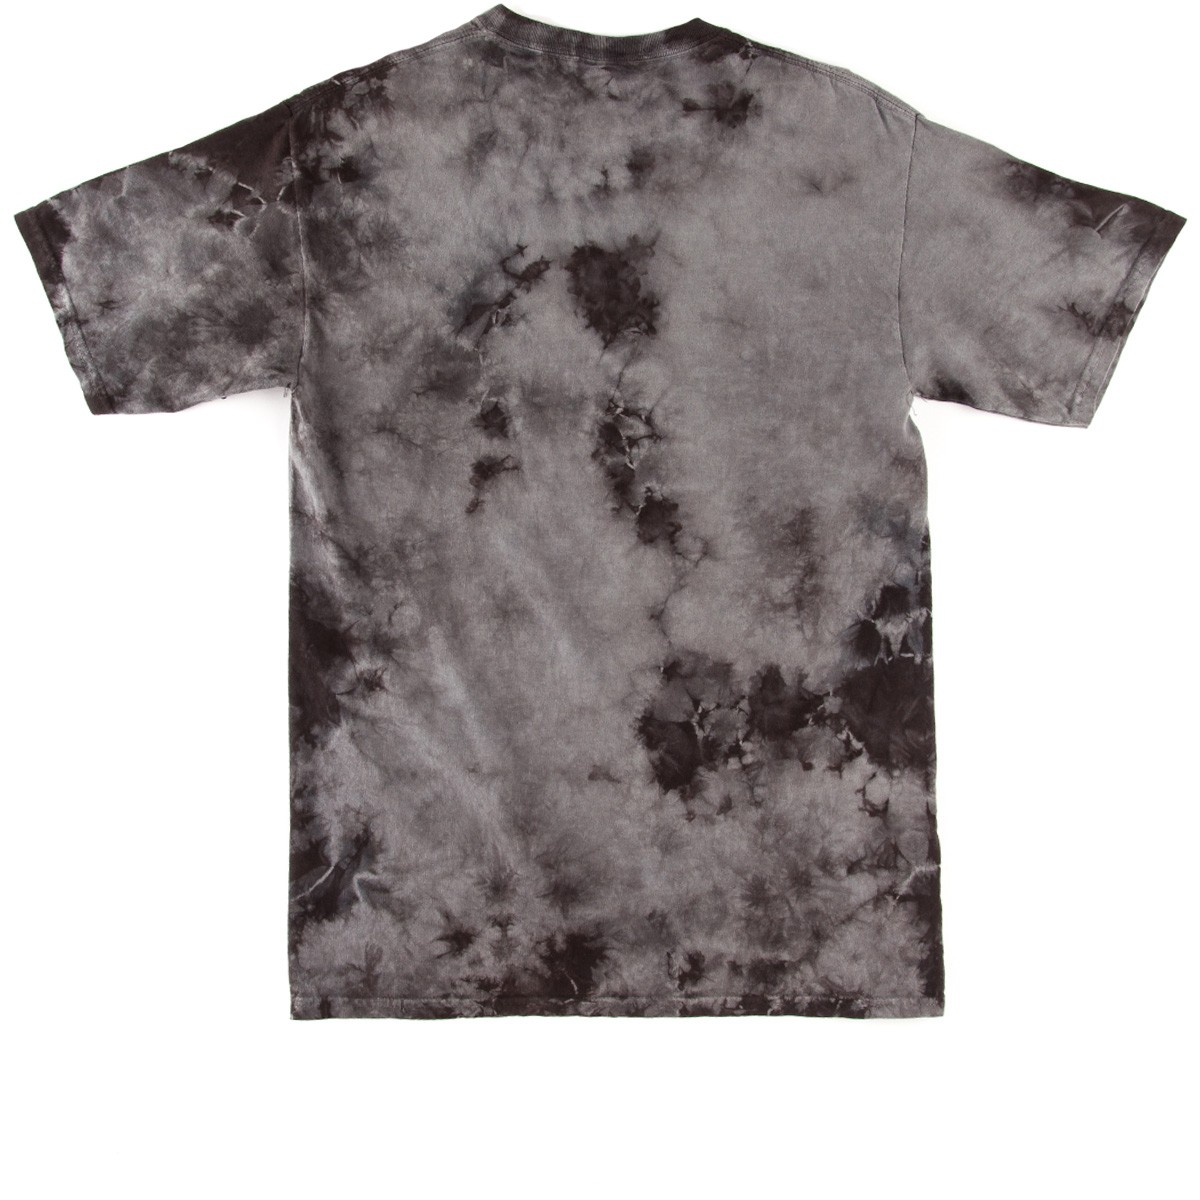 Divison T-Shirt - Black Acid Wash